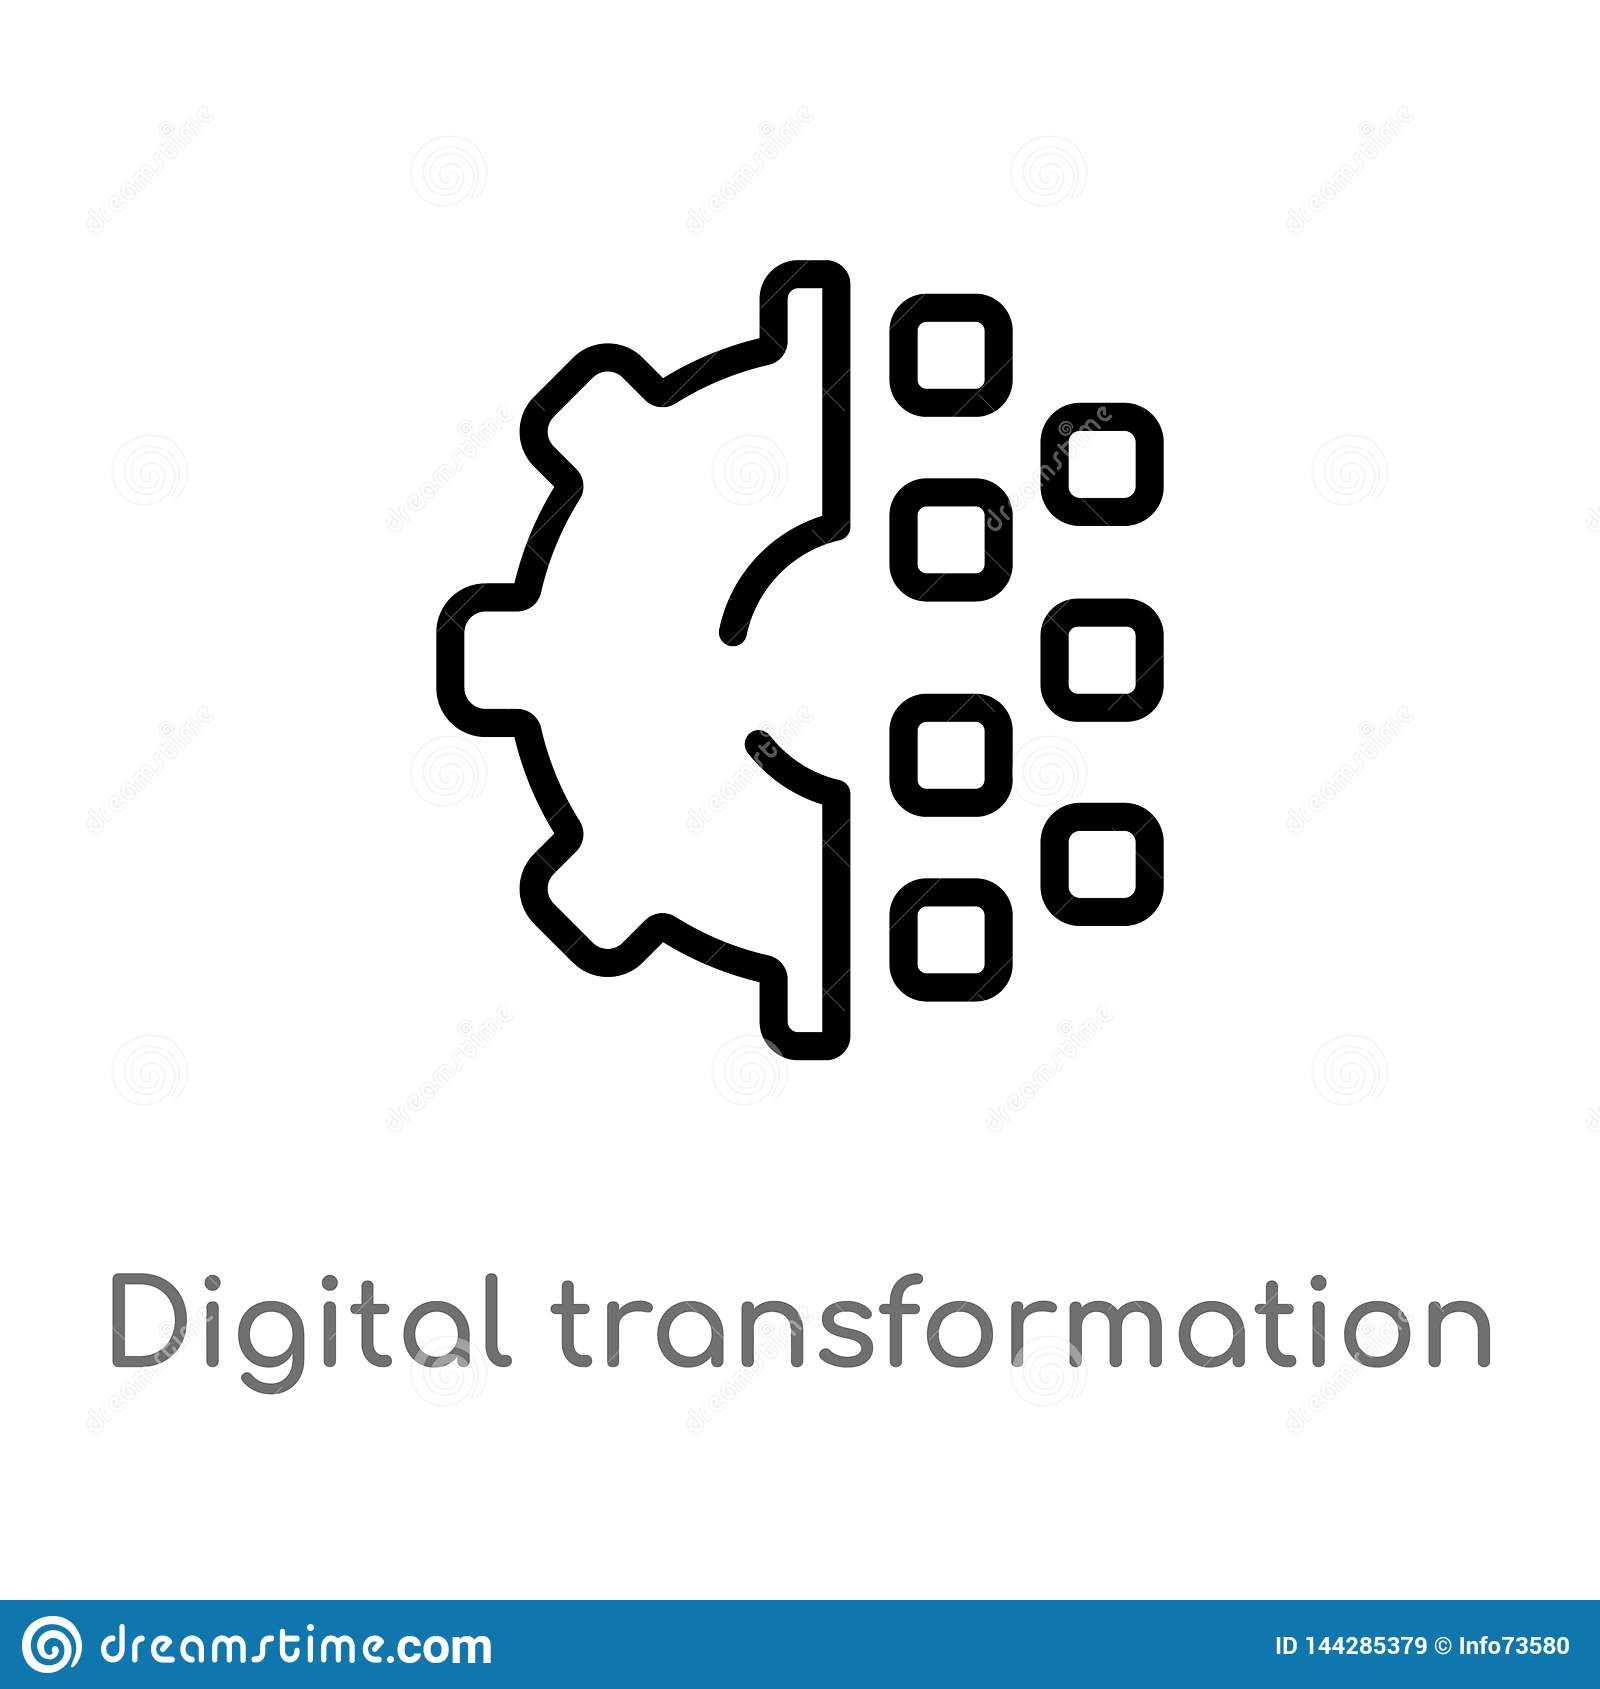 Outline Digital Transformation Vector Icon  Isolated Black